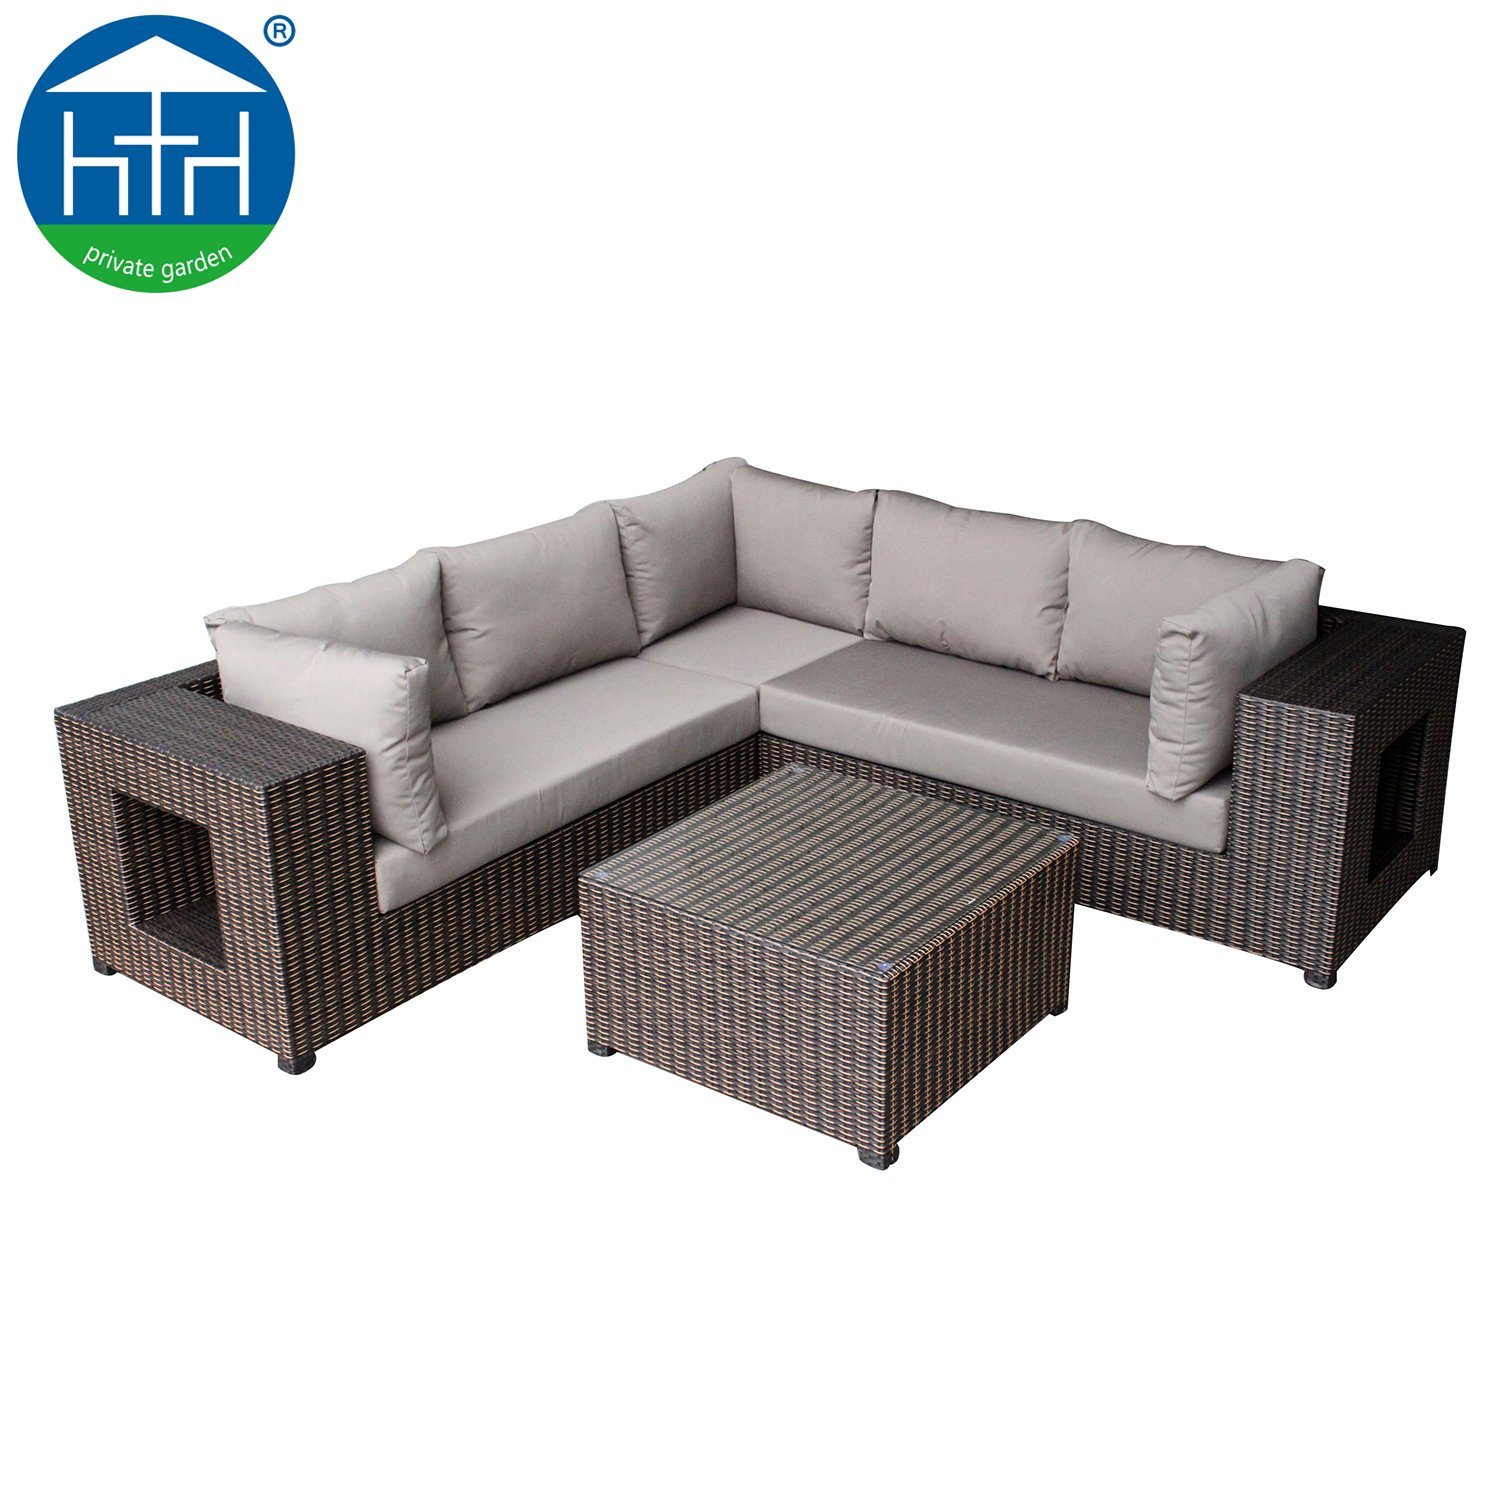 Hot Item Hotel Lobby Sofa Cozy Living Room Sectional Rattan Sofa Set With Storage Space